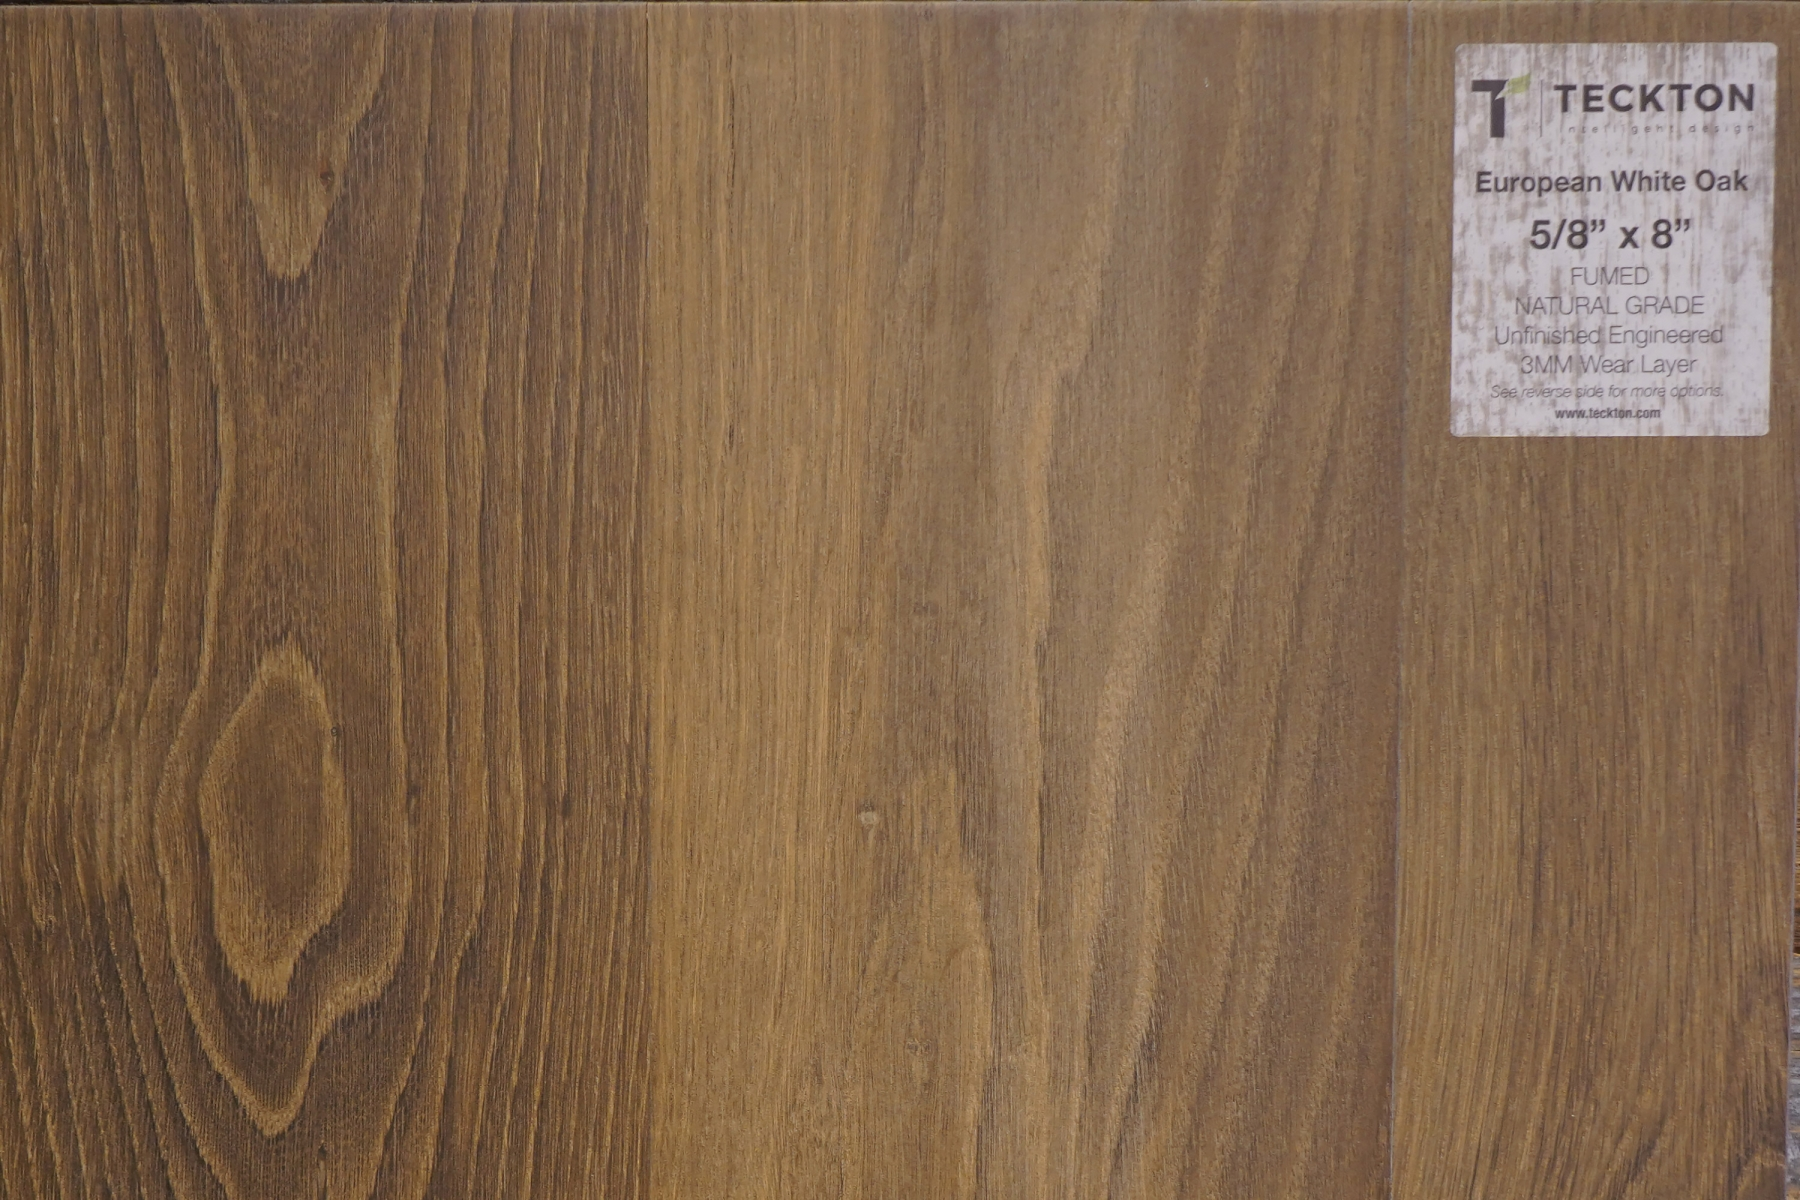 "European White Oak - Fumed Natural Grade  -  5/8"" x 8"""